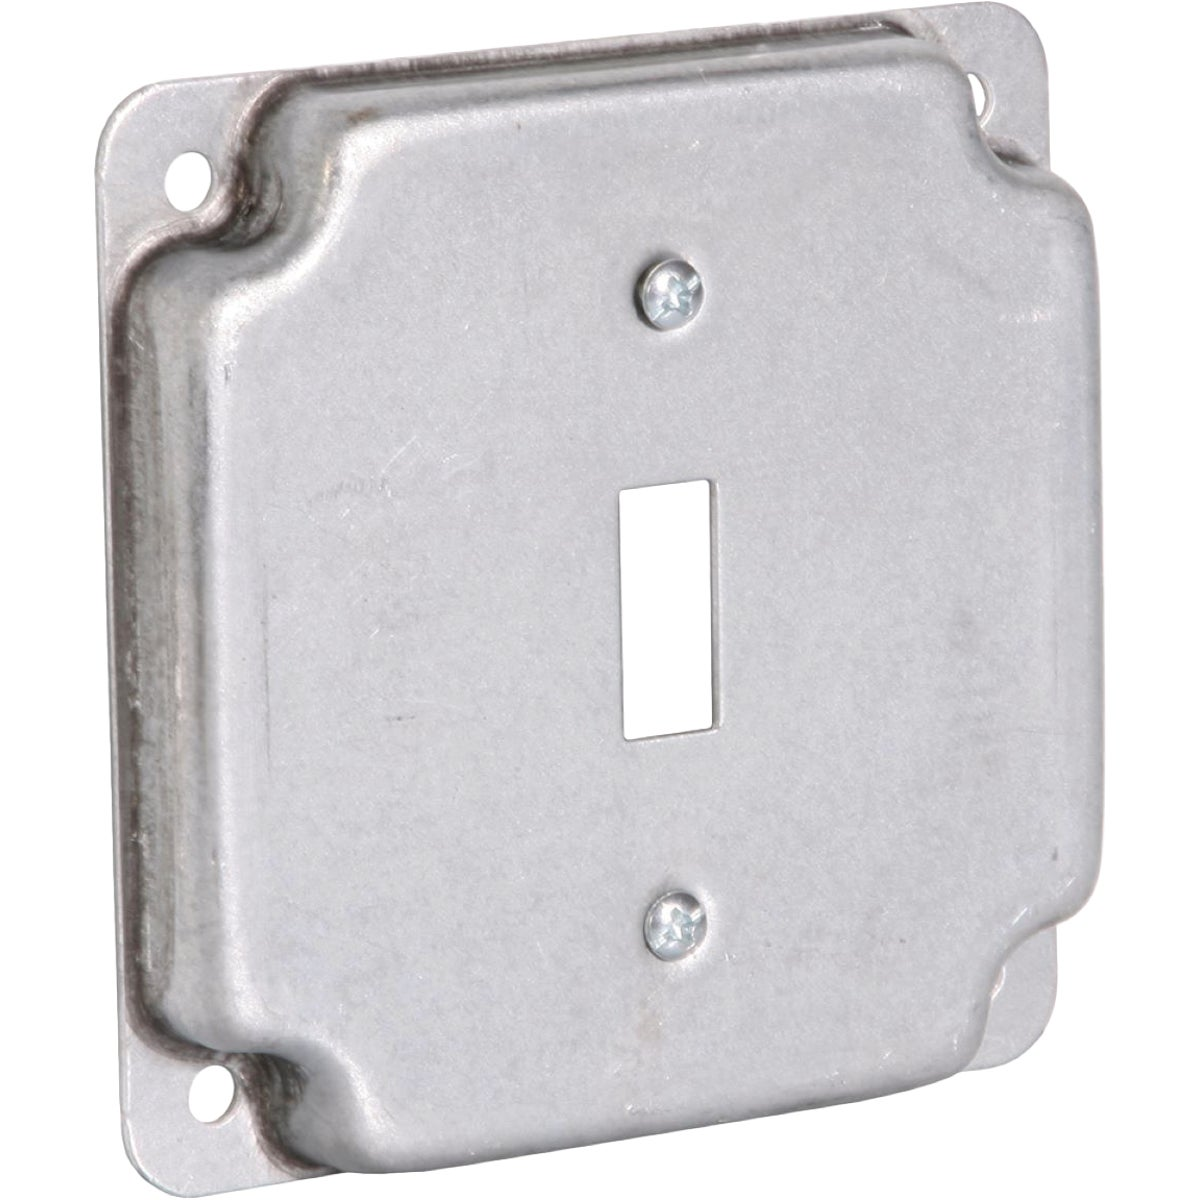 "4"" SQ 1-SWITCH BOX COVER - RS930 by Thomas & Betts"